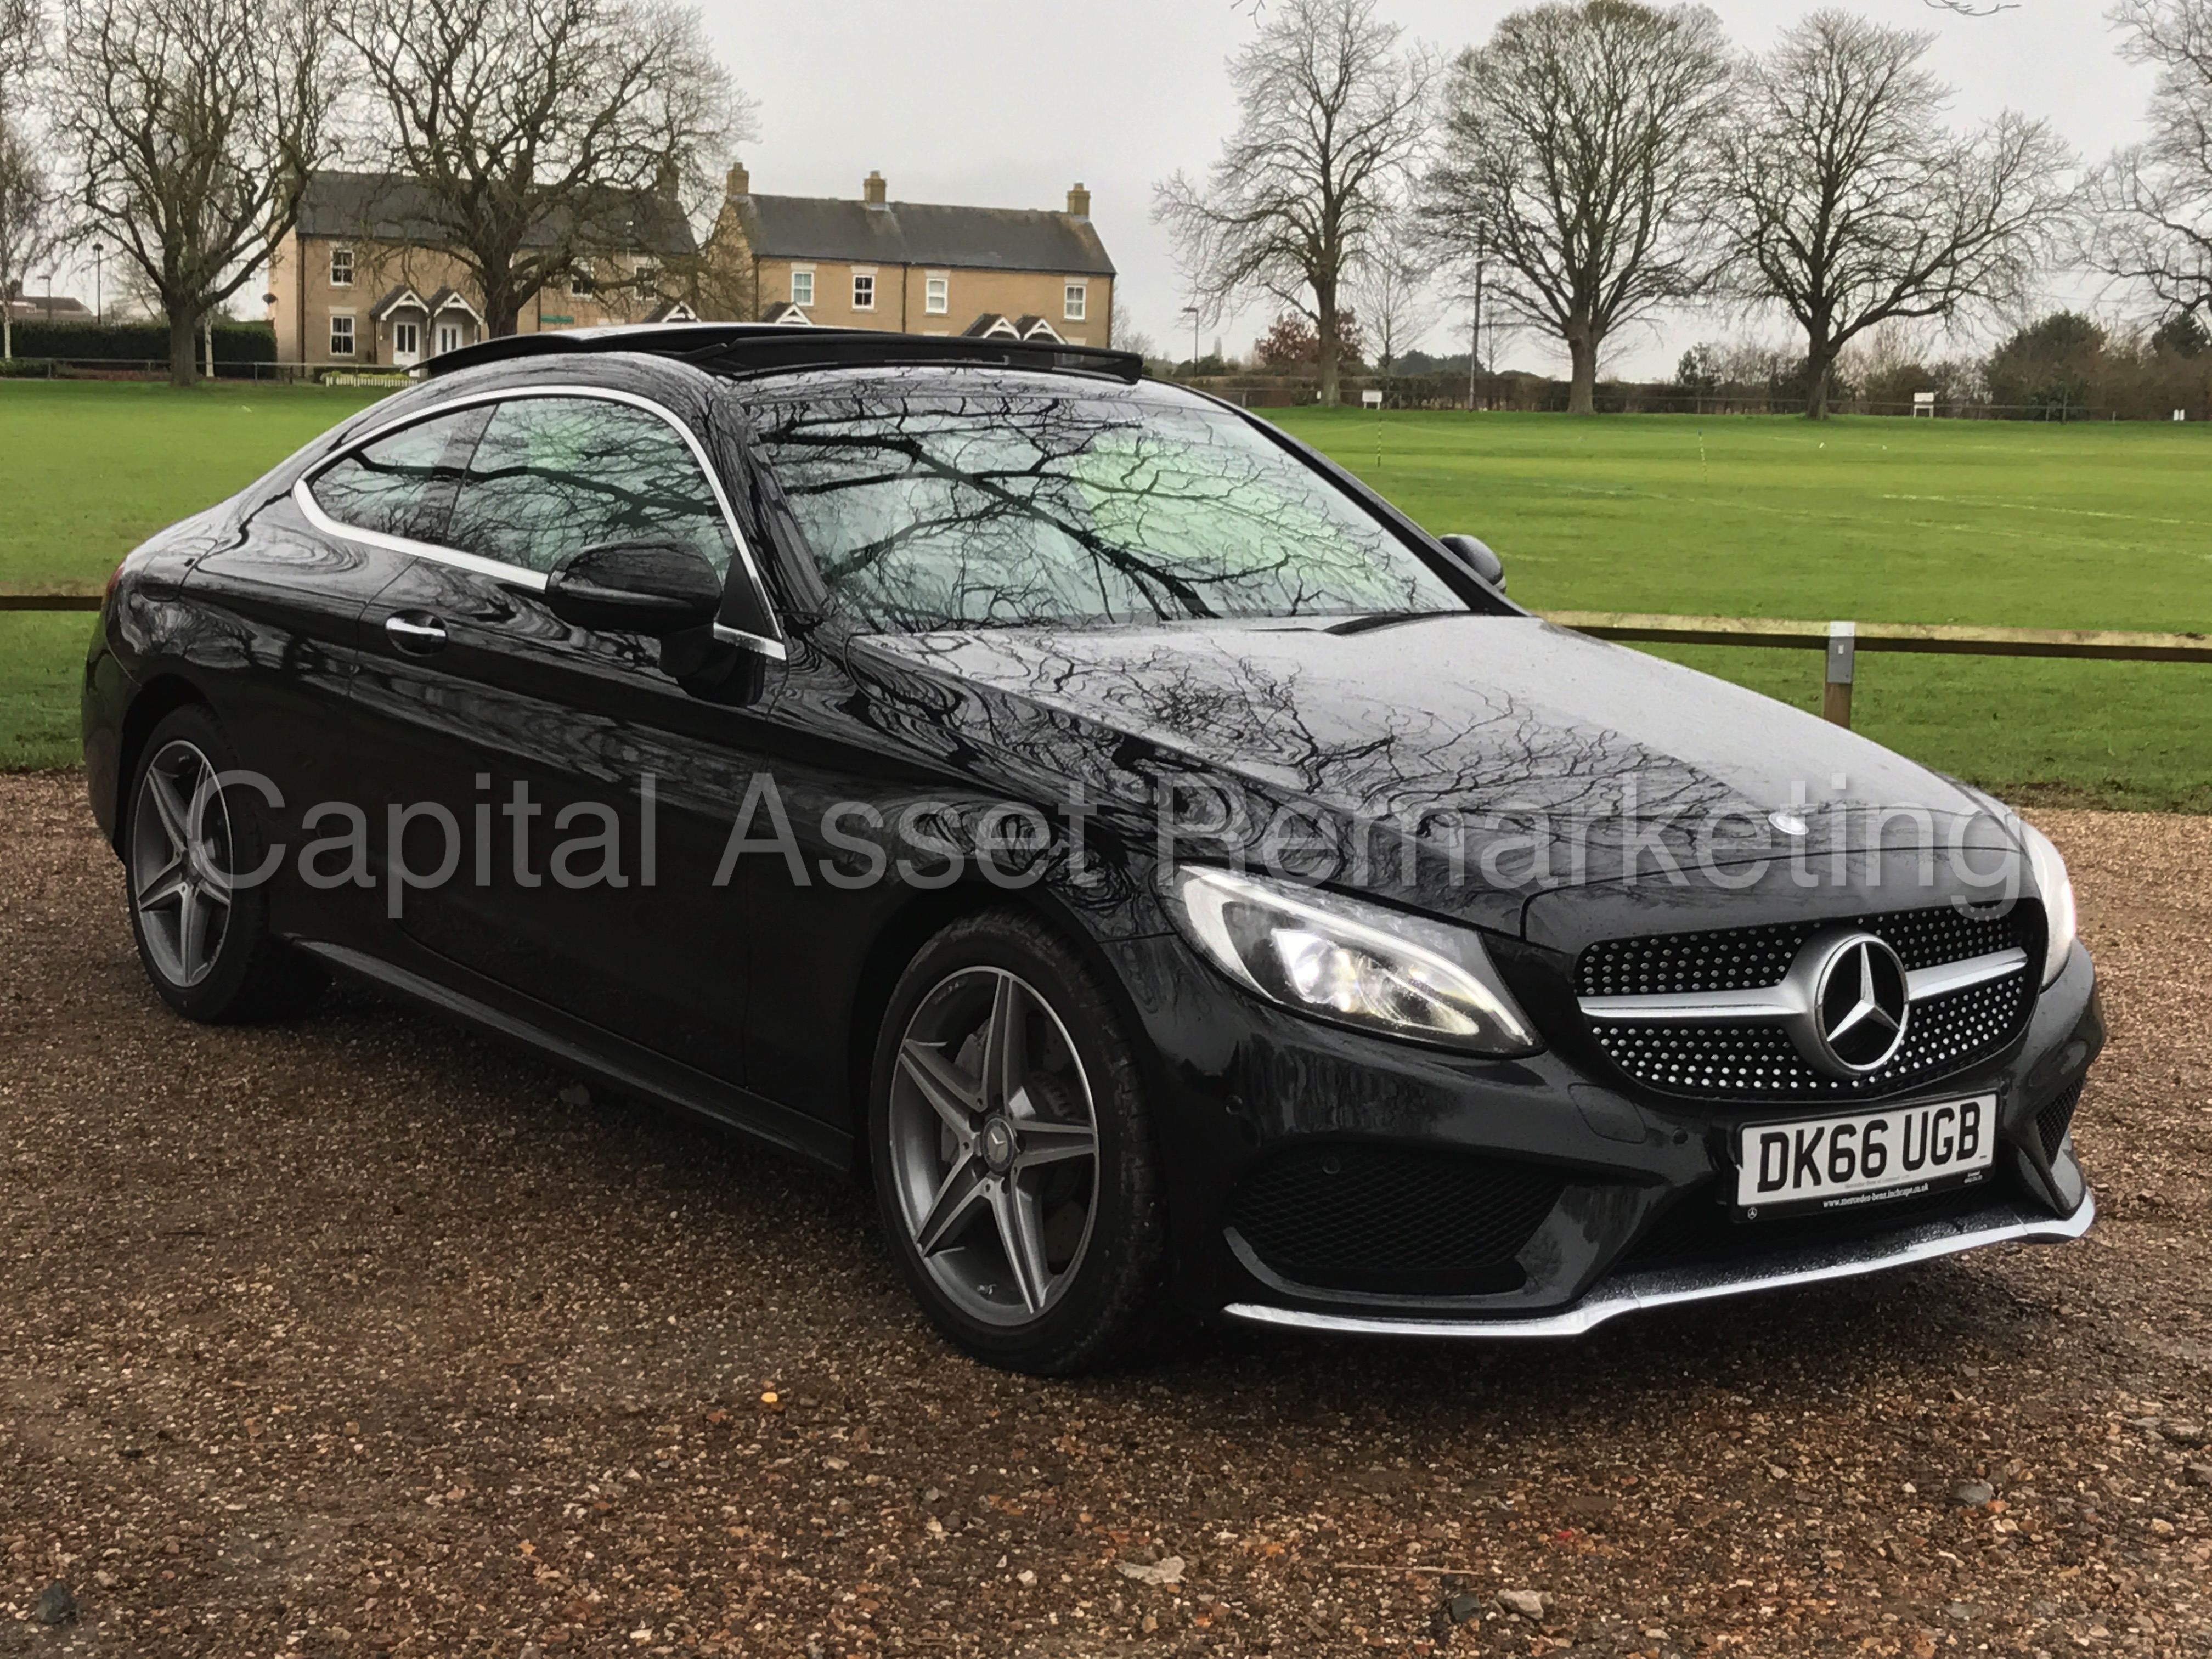 surrey class co uk motors benz for in used c mercedes local cars epsom sale